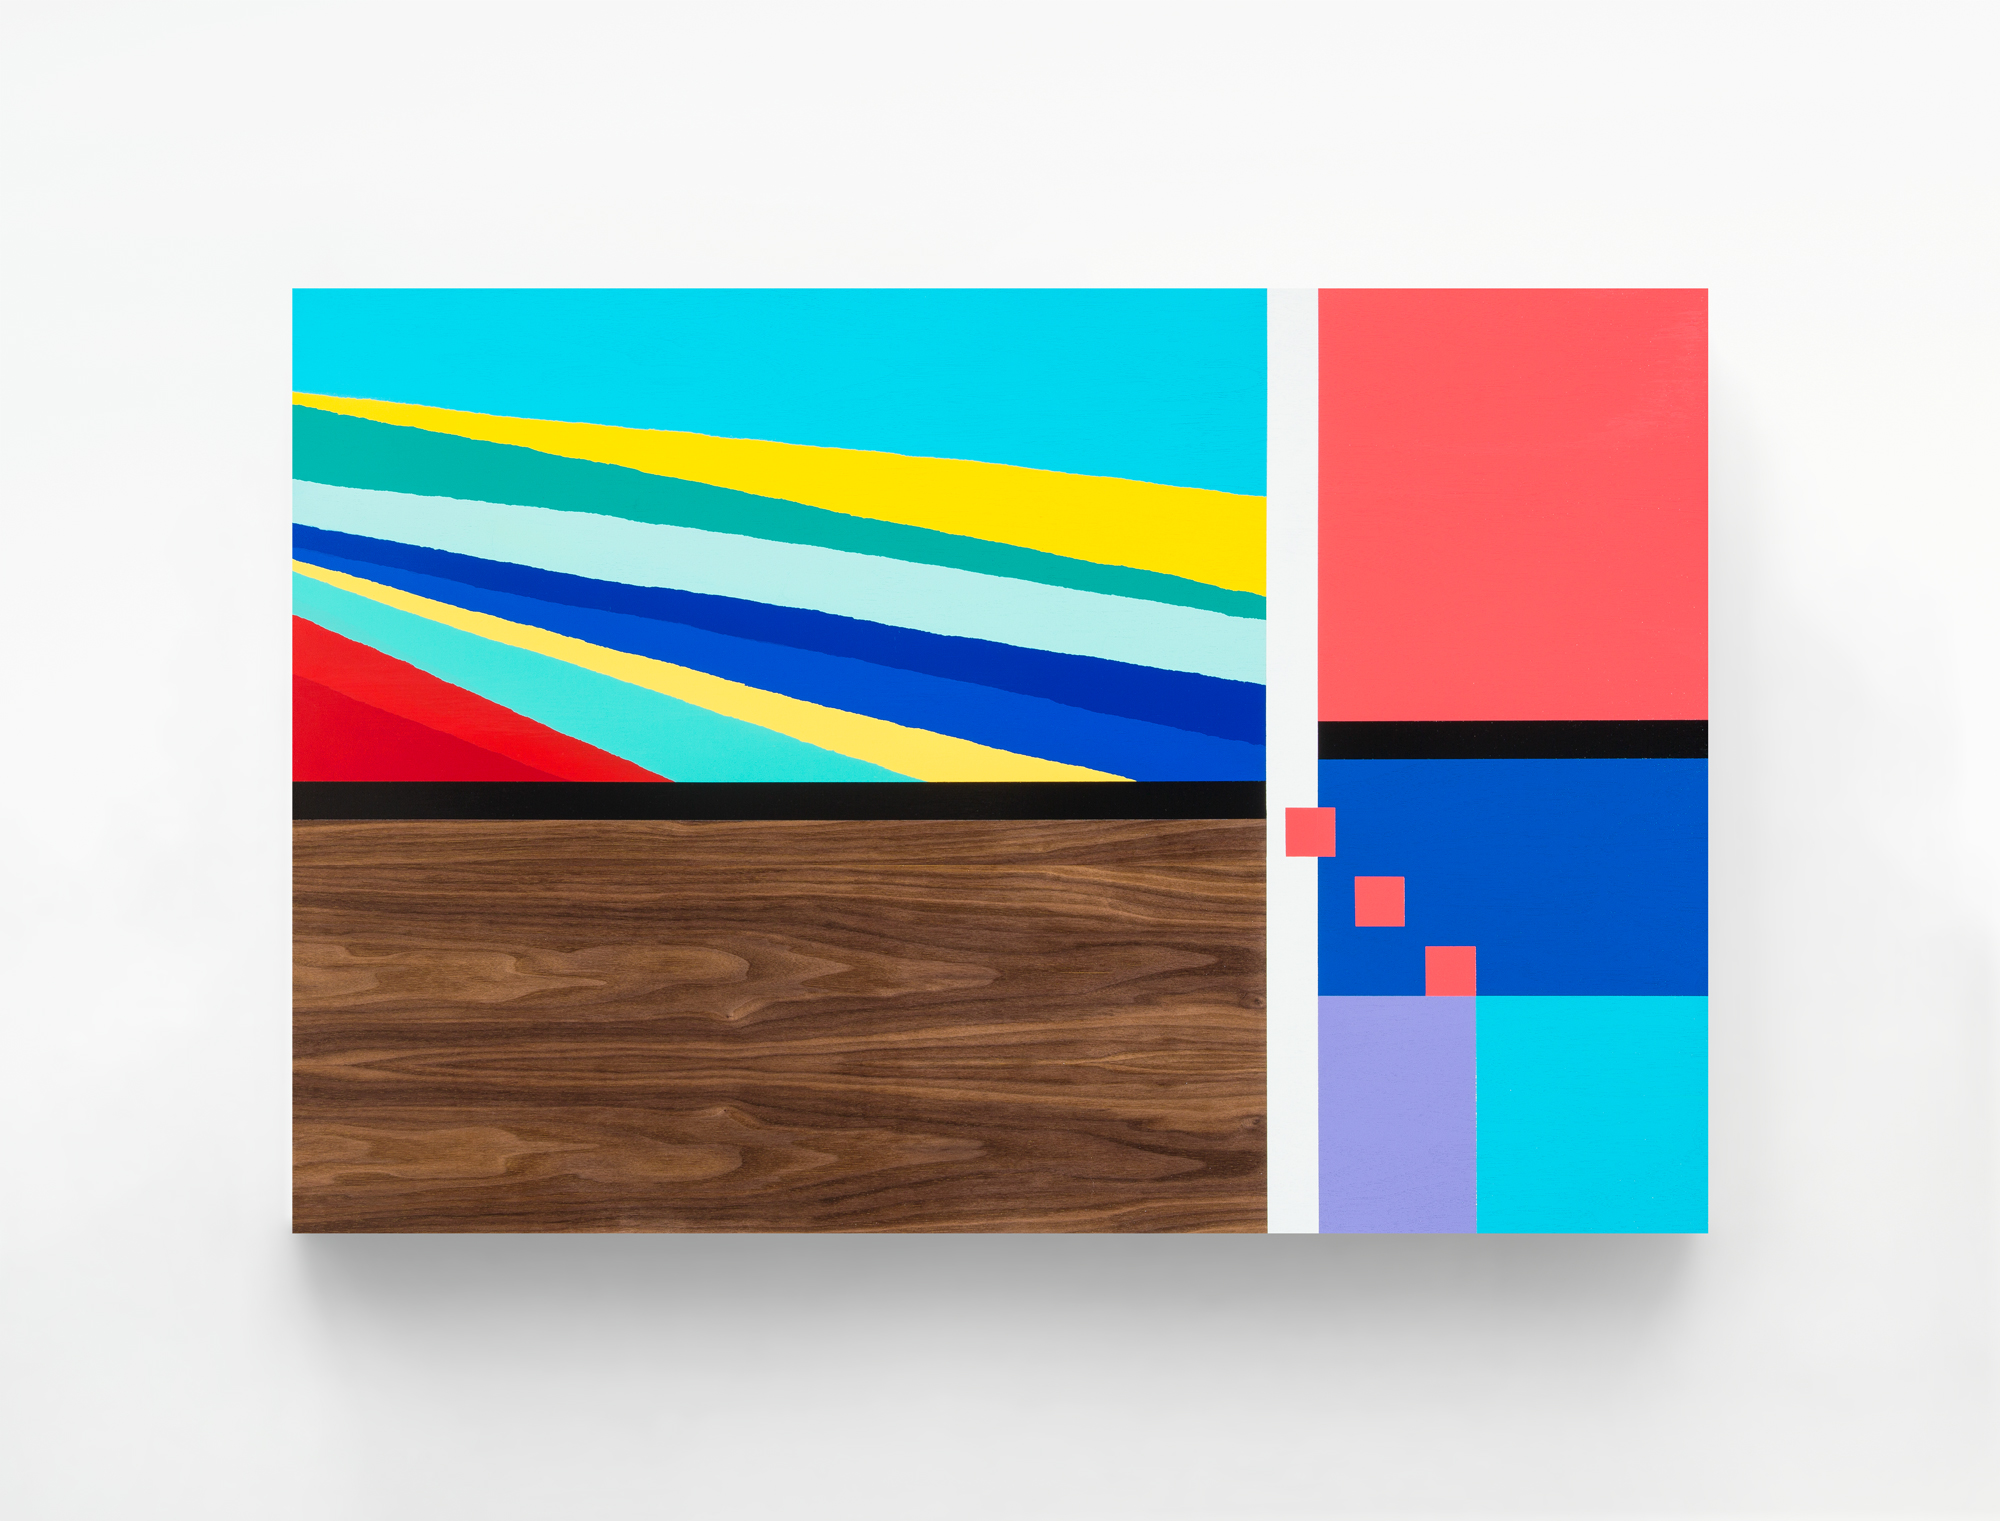 Concourse C, 2015 Spray paint and polyurethane on walnut 40 x 30 x 2.5 inches